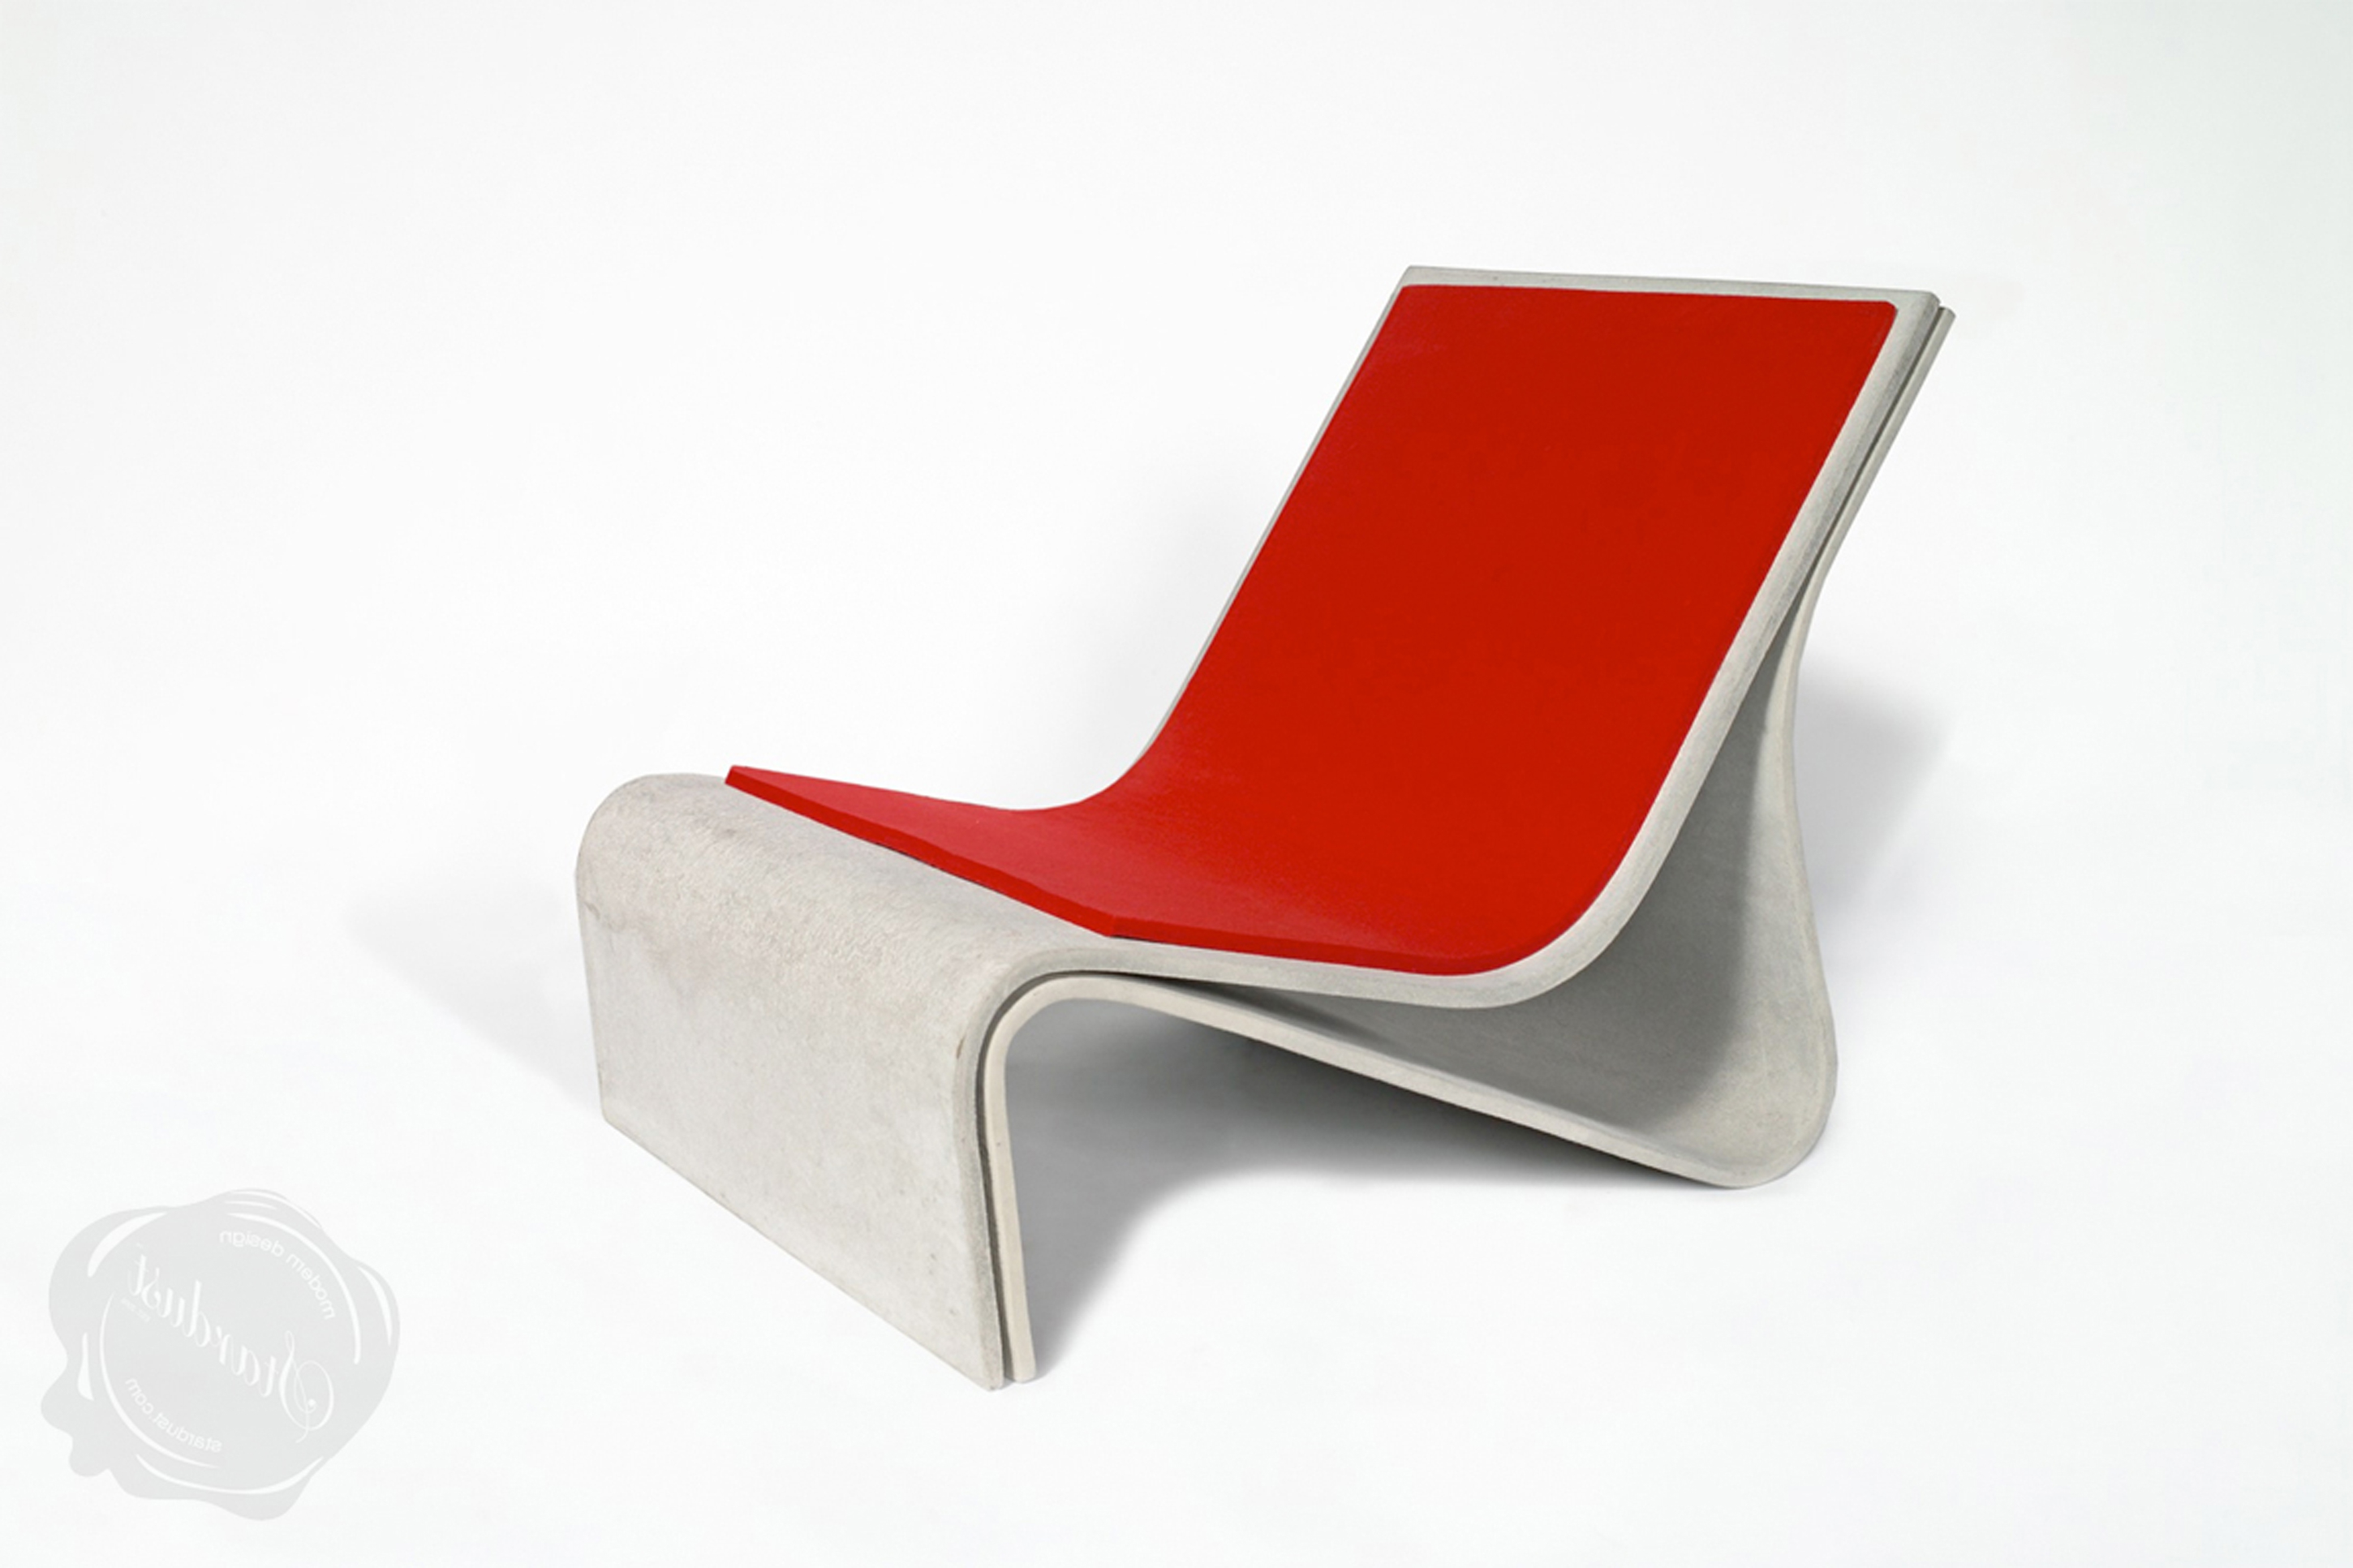 Amazing Modern Outdoor Design Idea With Red Cream Lounge Chair Impressive Modern Outdoor Design Ideas (View 17 of 28)